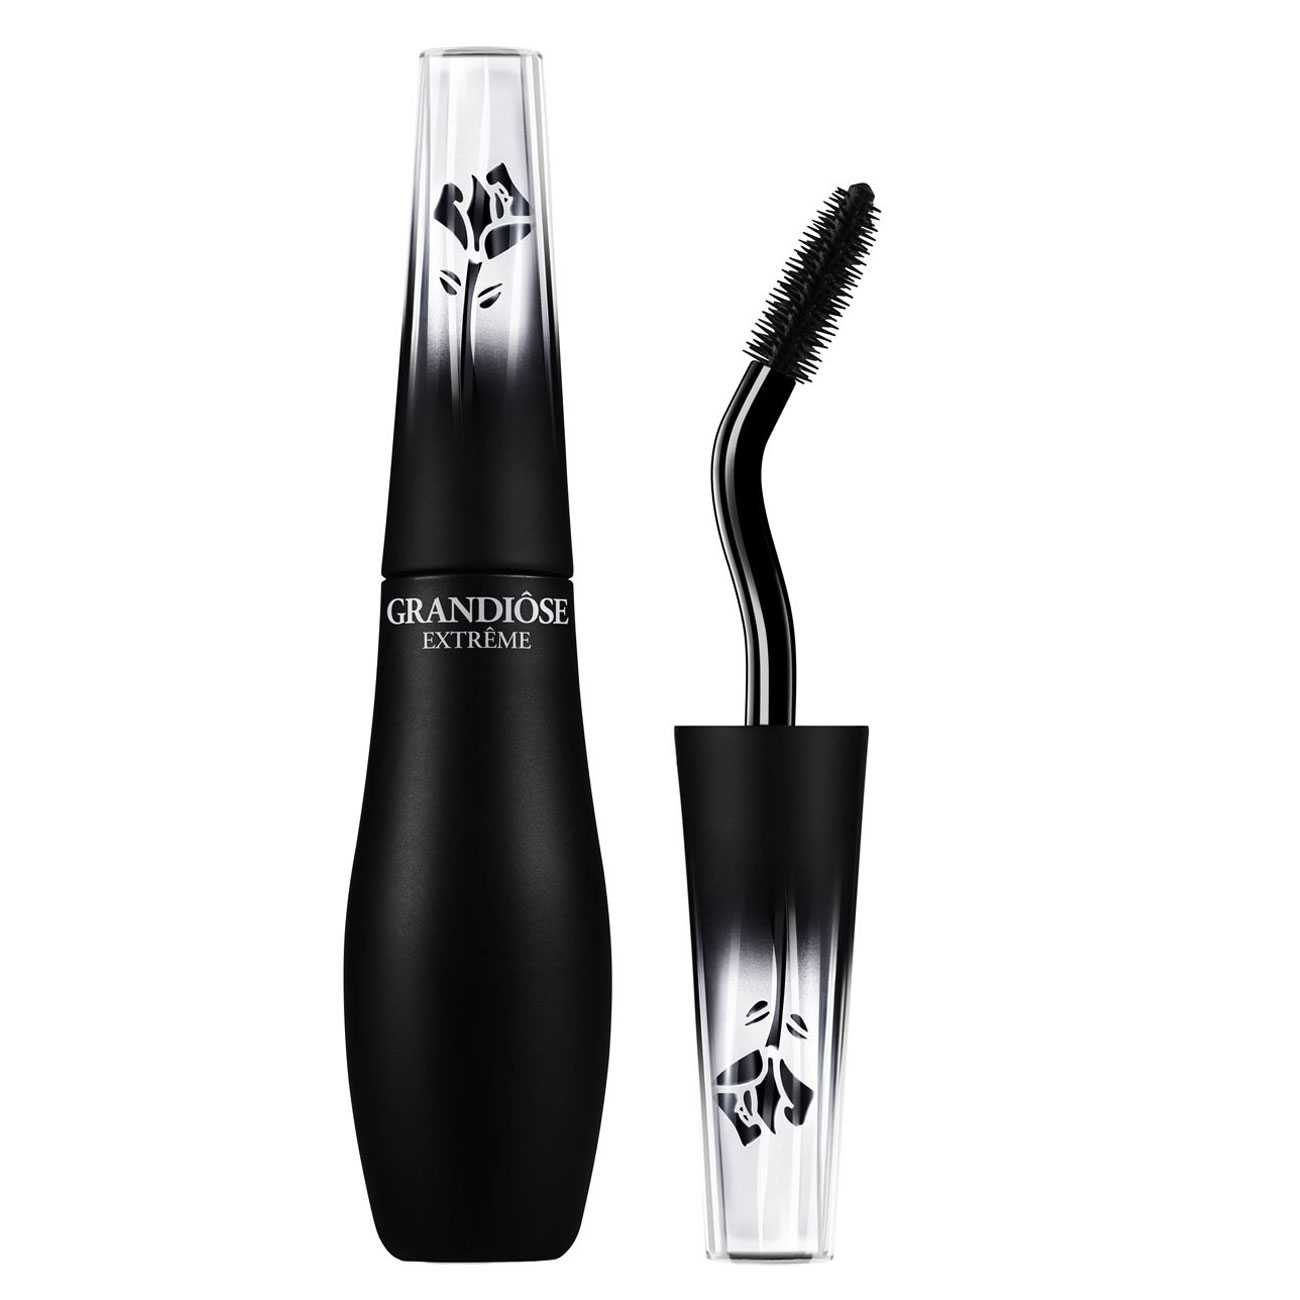 GRANDIOSE MASCARA EXTREME 10 ML imagine produs